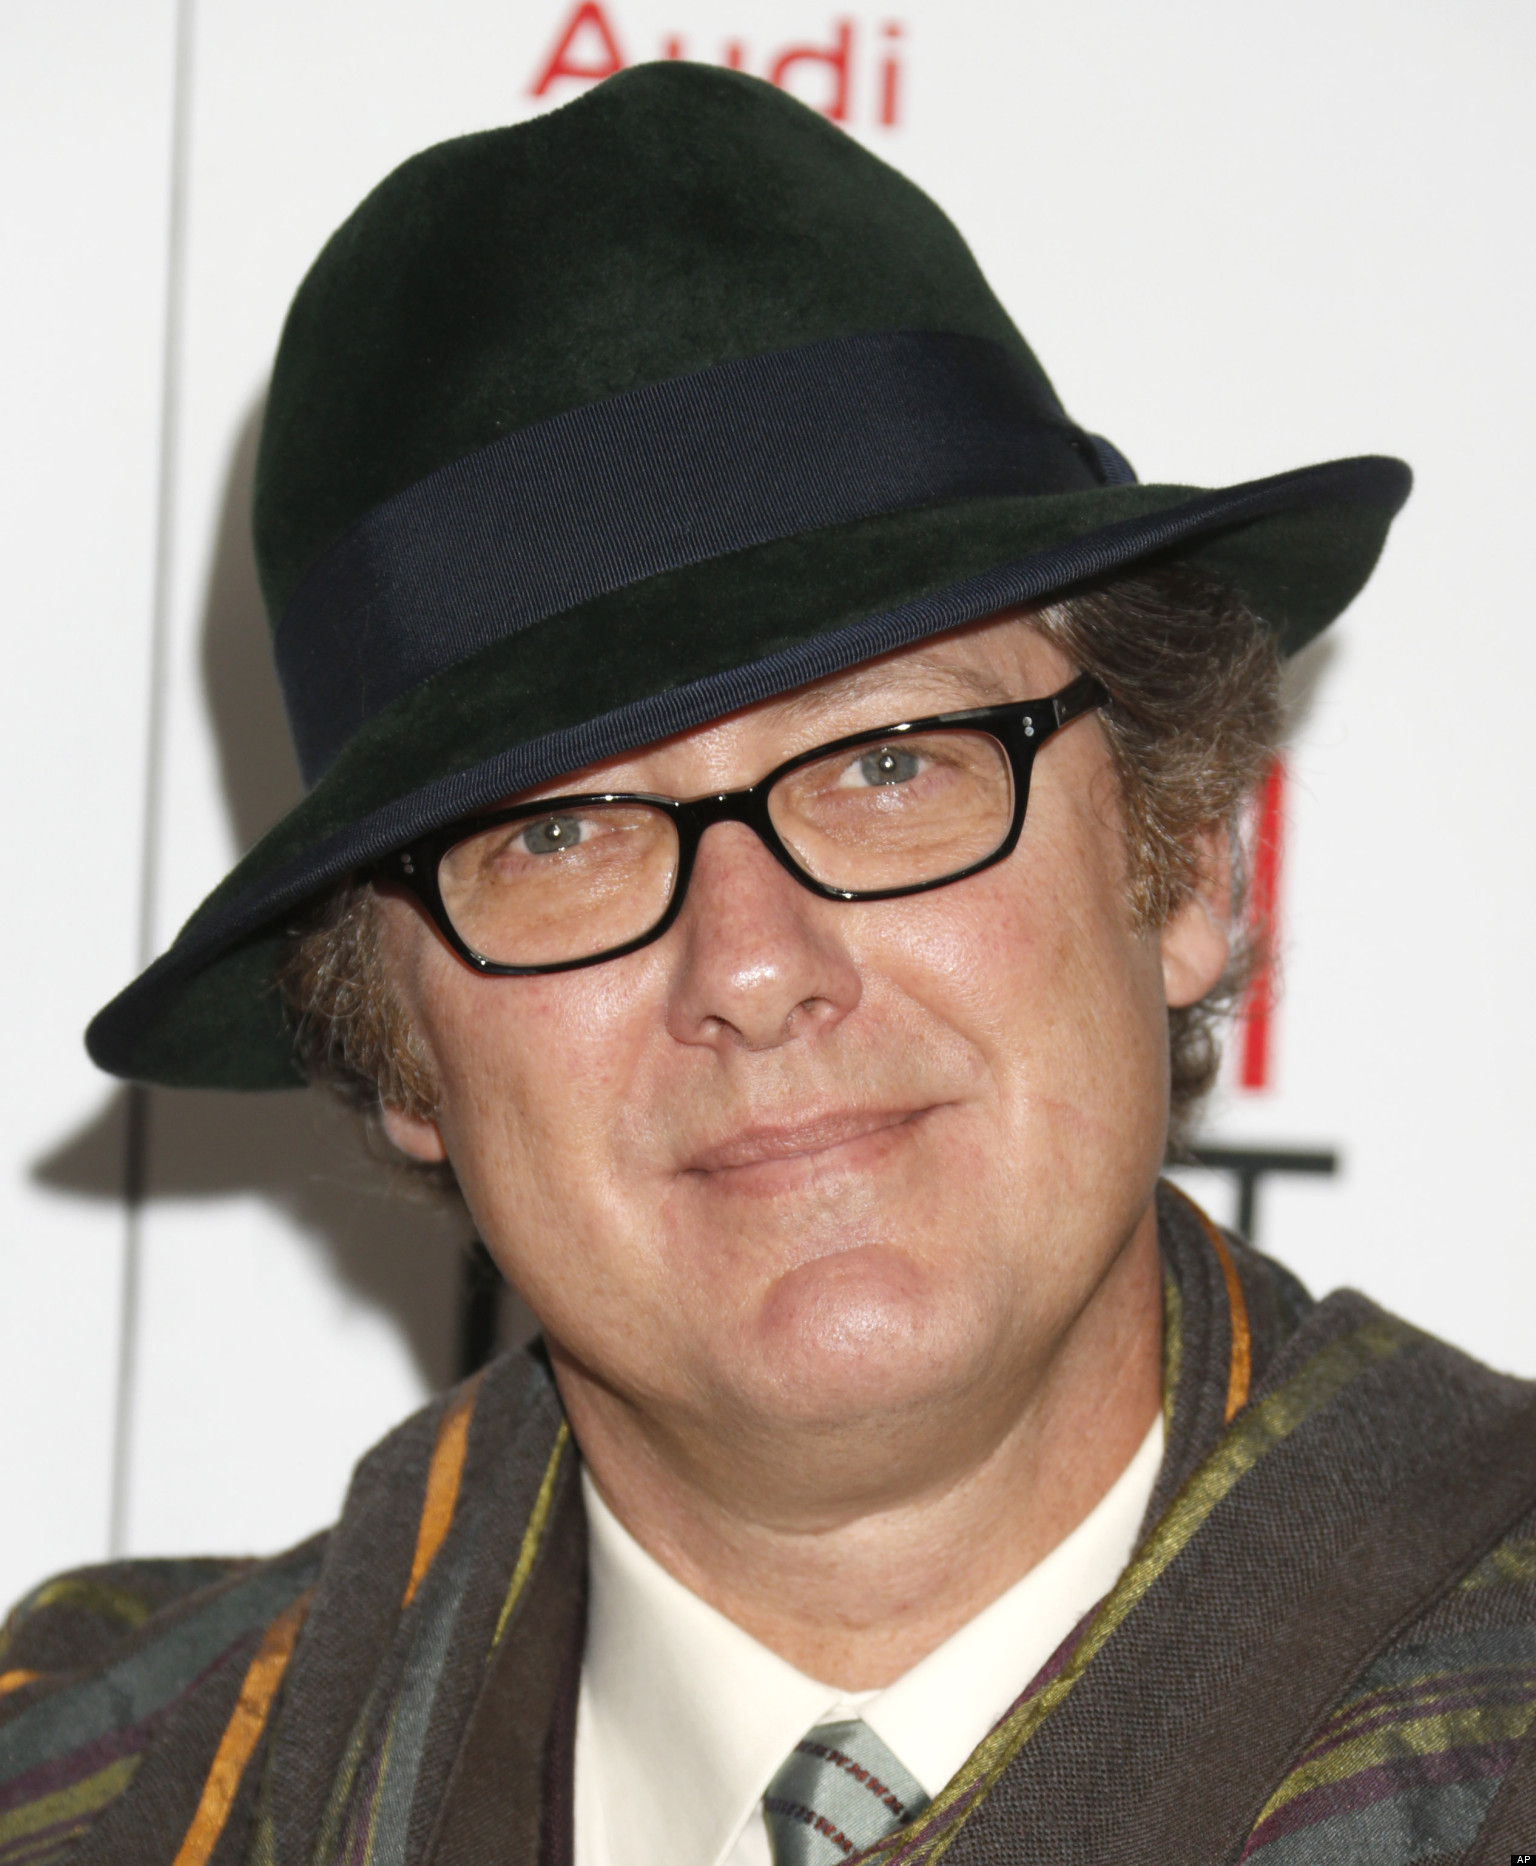 james spader awardjames spader wife, james spader imdb, james spader filmography, james spader 2017, james spader filme, james spader gif, james spader wallpaper, james spader movie list, james spader movies, james spader 2016, james spader mbti, james spader award, james spader personality, james spader as daniel jackson, james spader 1990, james spader facebook, james spader knee, james spader and susan sarandon, james spader fallon, james spader best movies